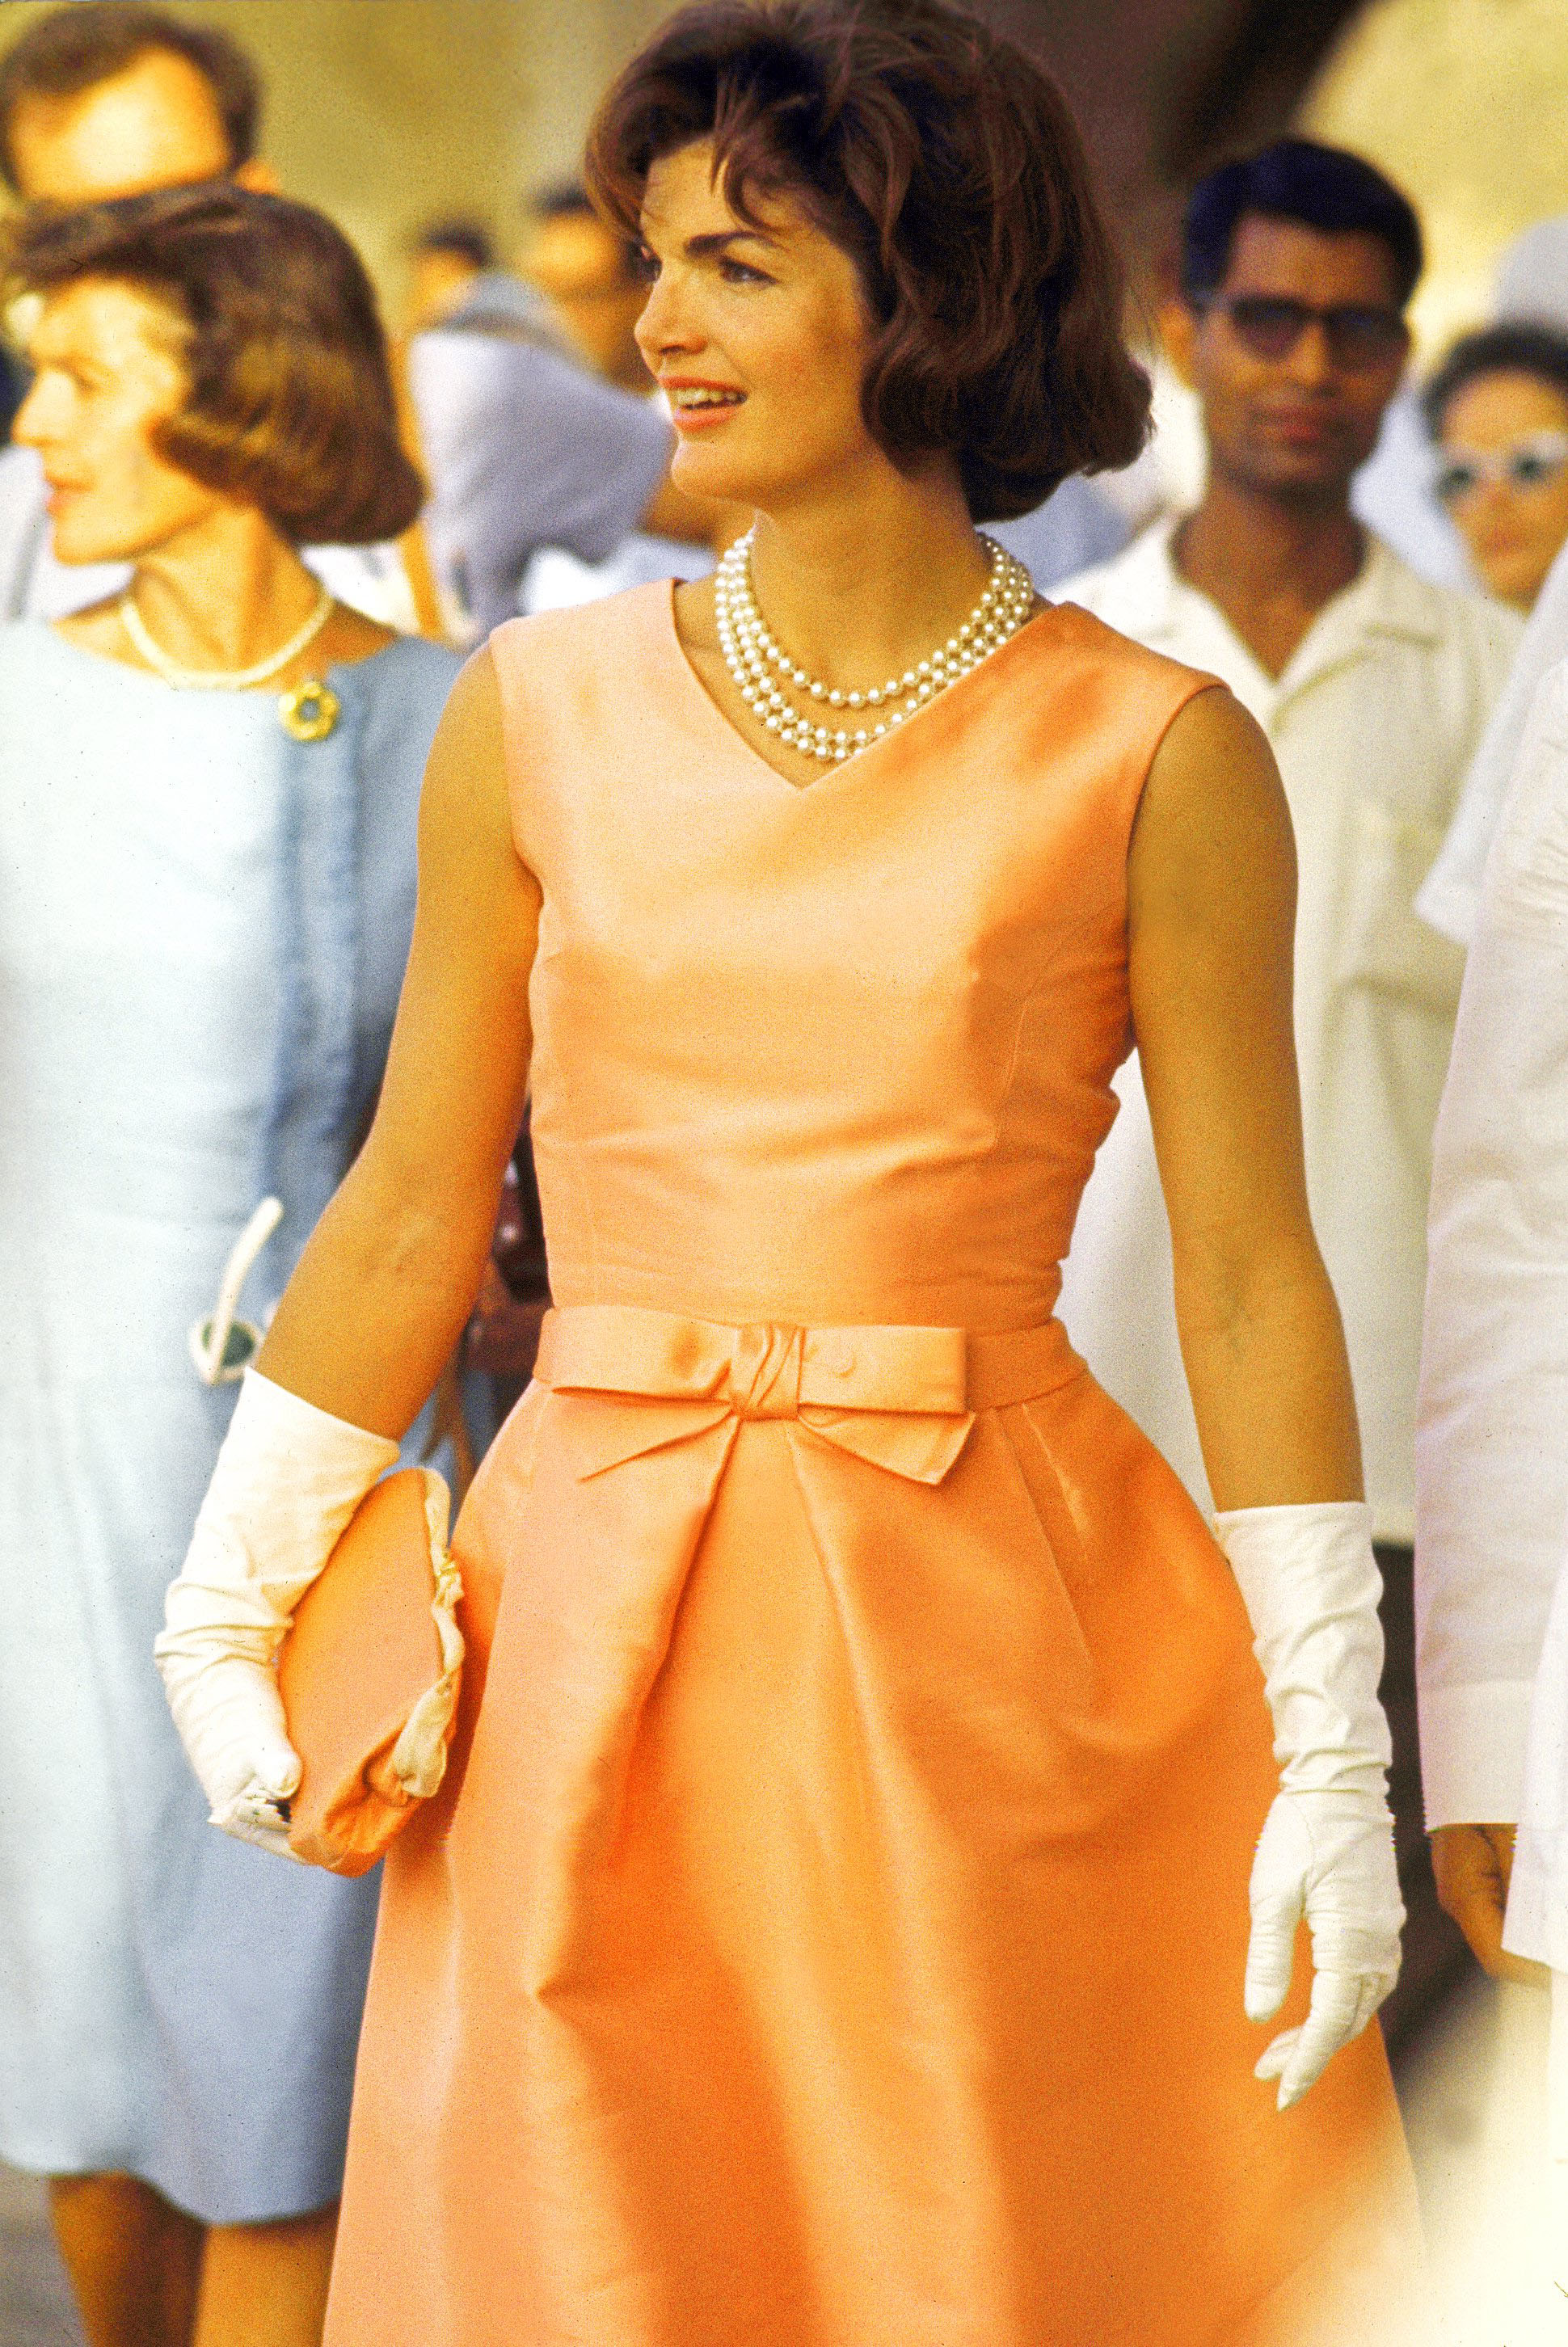 First Lady Jackie Kennedy wearing a fitted silk apricot dress and triple strand of pearls, walking through crowds during a visit to Udaipur, India on March 1, 1962.